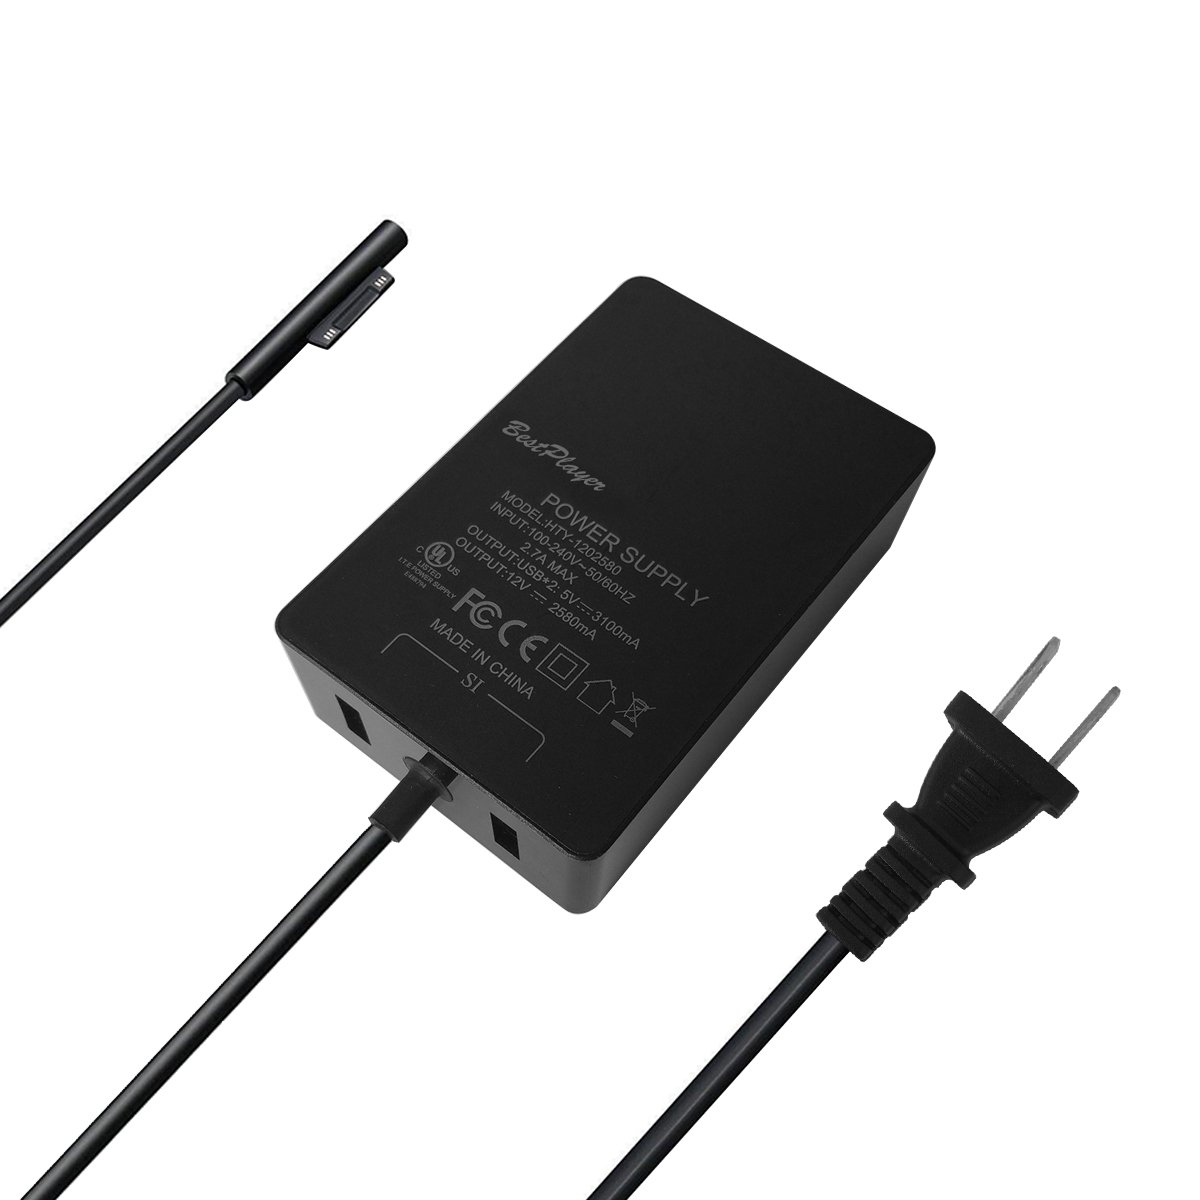 [UL Listed] Surface Pro 3 Pro 4 Charger, BestPlayer Surface Power Supply Adapter 36W 12V 2.58A Charger with 8.2 Ft Power Cord/2-Port USB for Microsoft Surface Pro 3 Pro 4 i5 i7 Tablet by BestPlayer (Image #7)